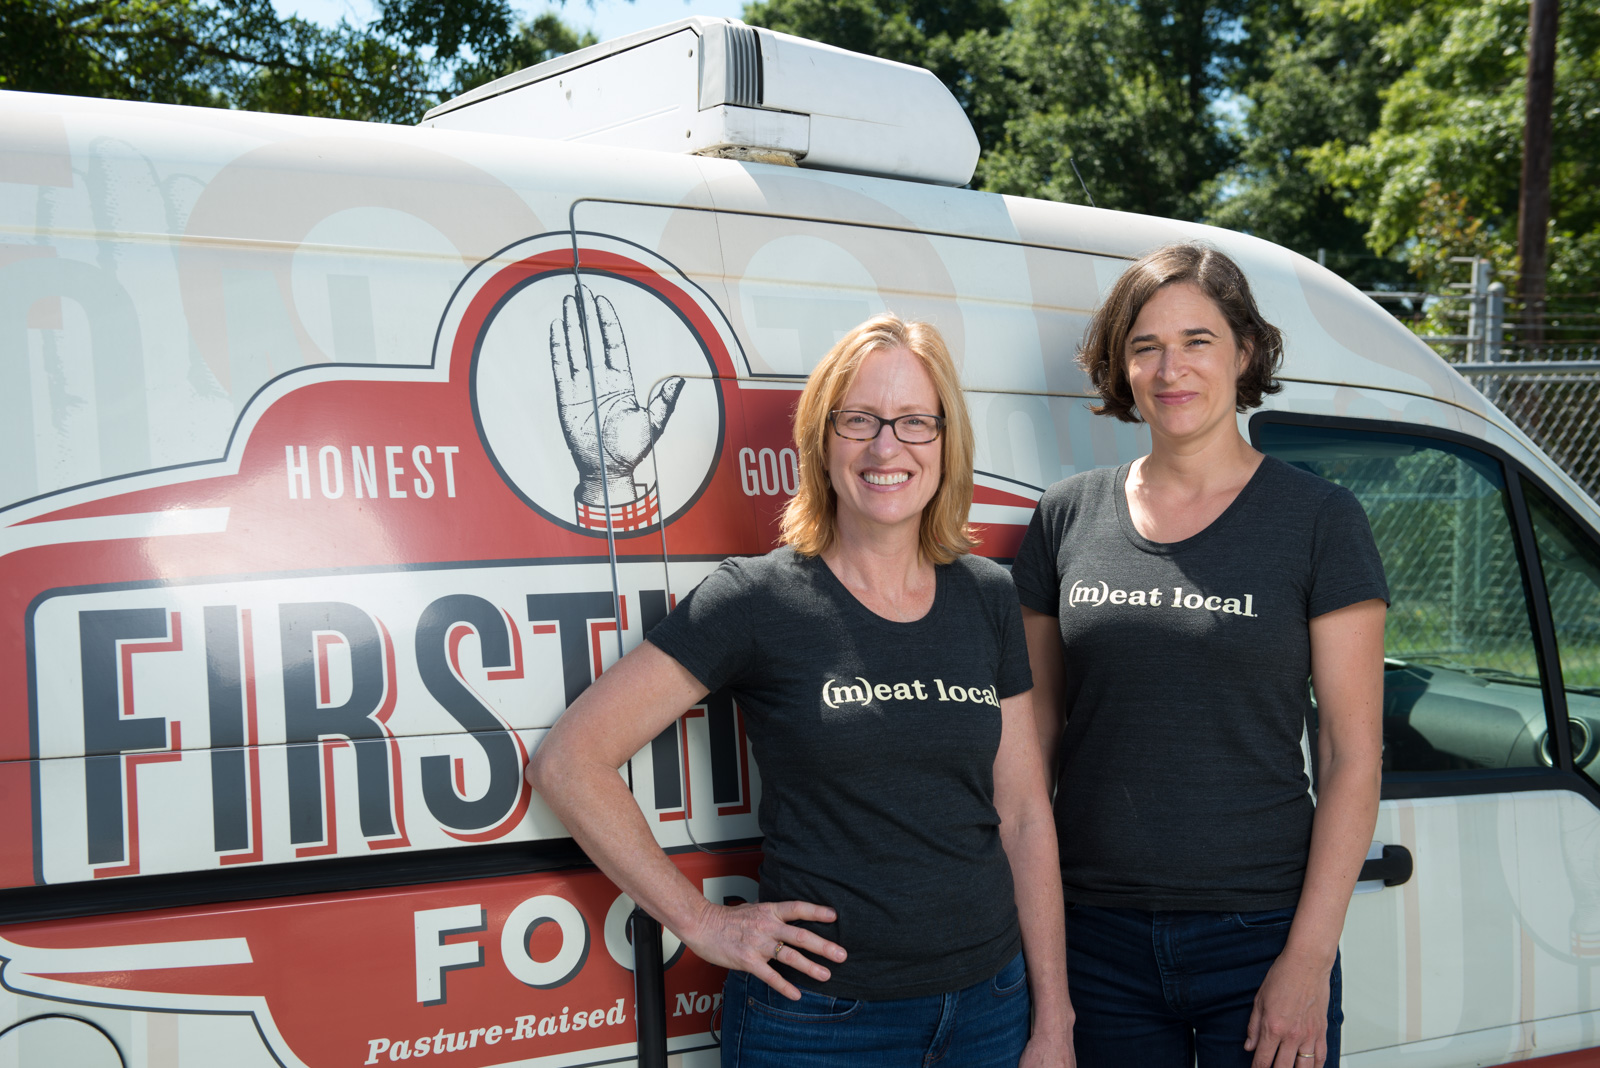 Jennifer Curtis (left) and Tina Prevatte Levy (right) are the co-founders and co-CEOs of Durham-based Firsthand Foods. (Photo courtesy of Firsthand Foods)